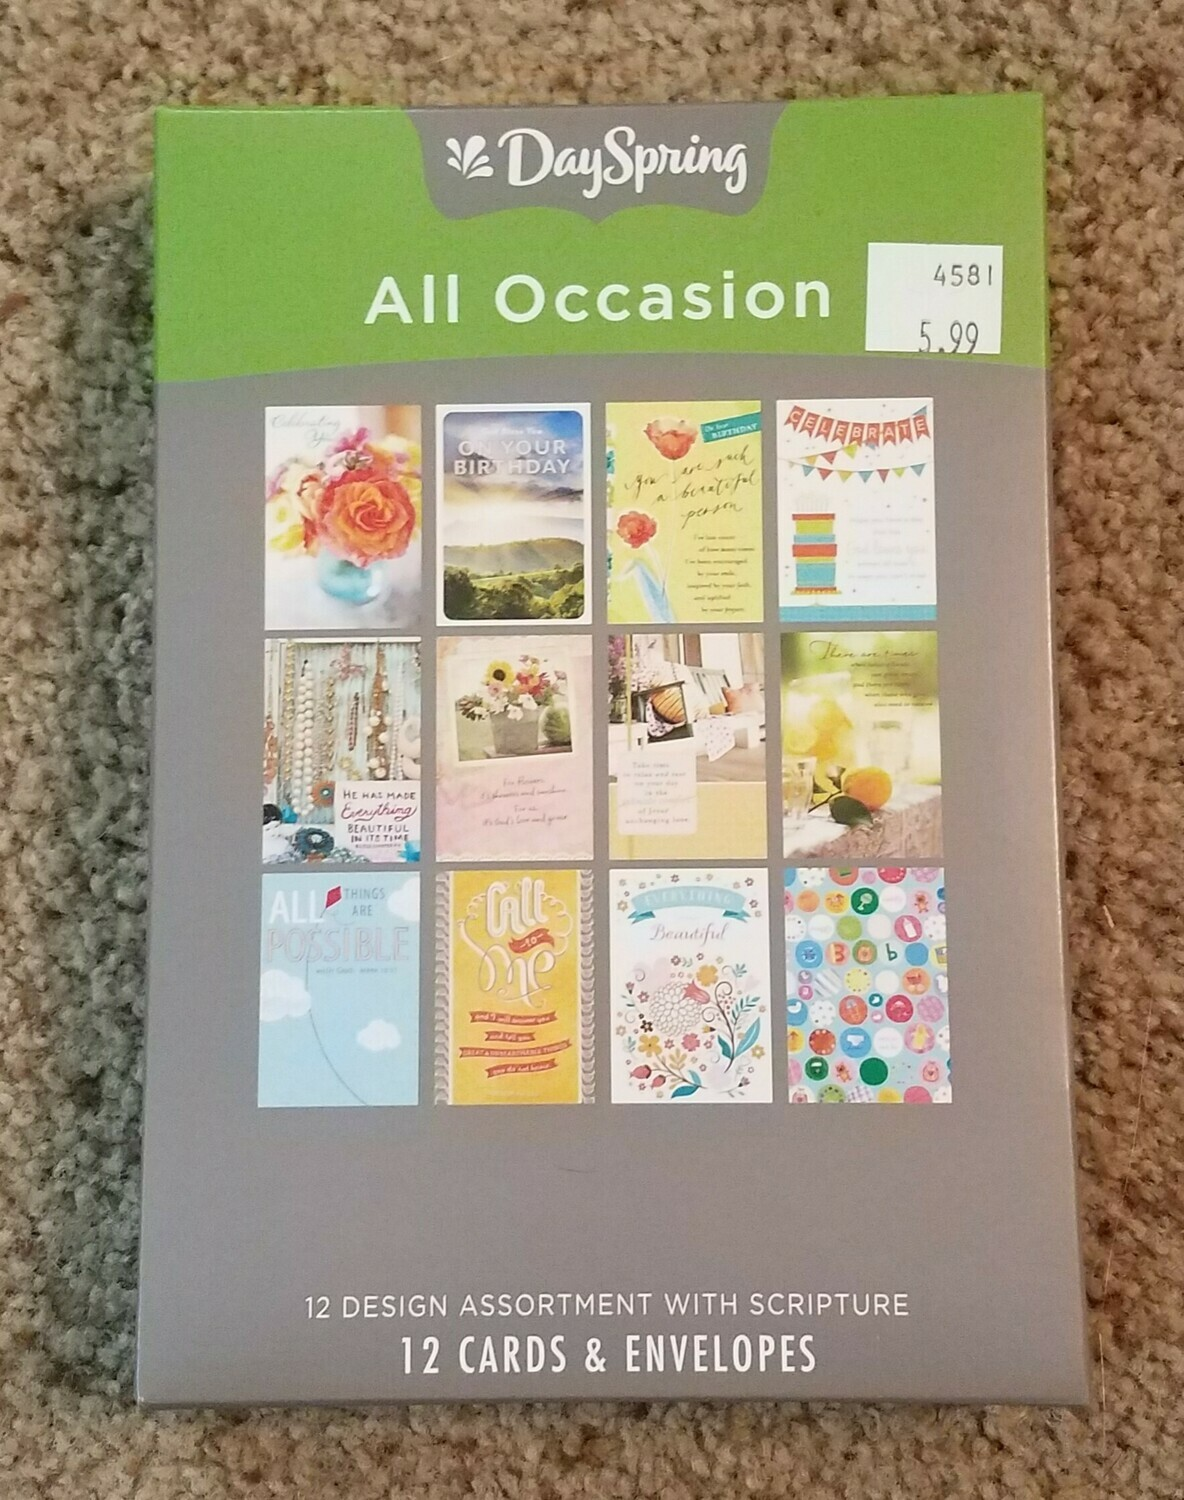 Dayspring Box Cards - Assortment of Cards